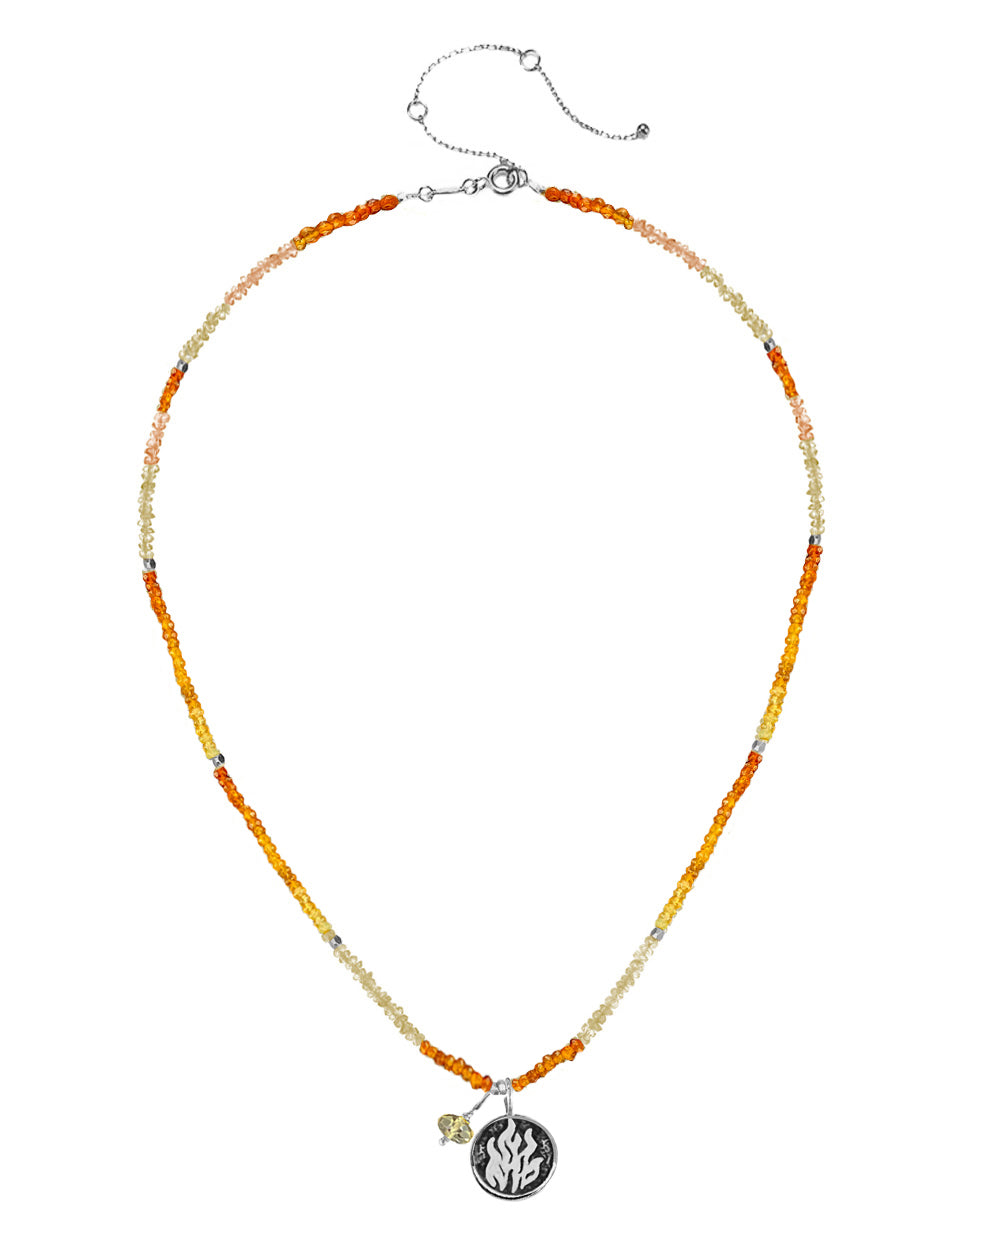 Fire Elements Necklace with Shaded Citrine in Sterling Silver